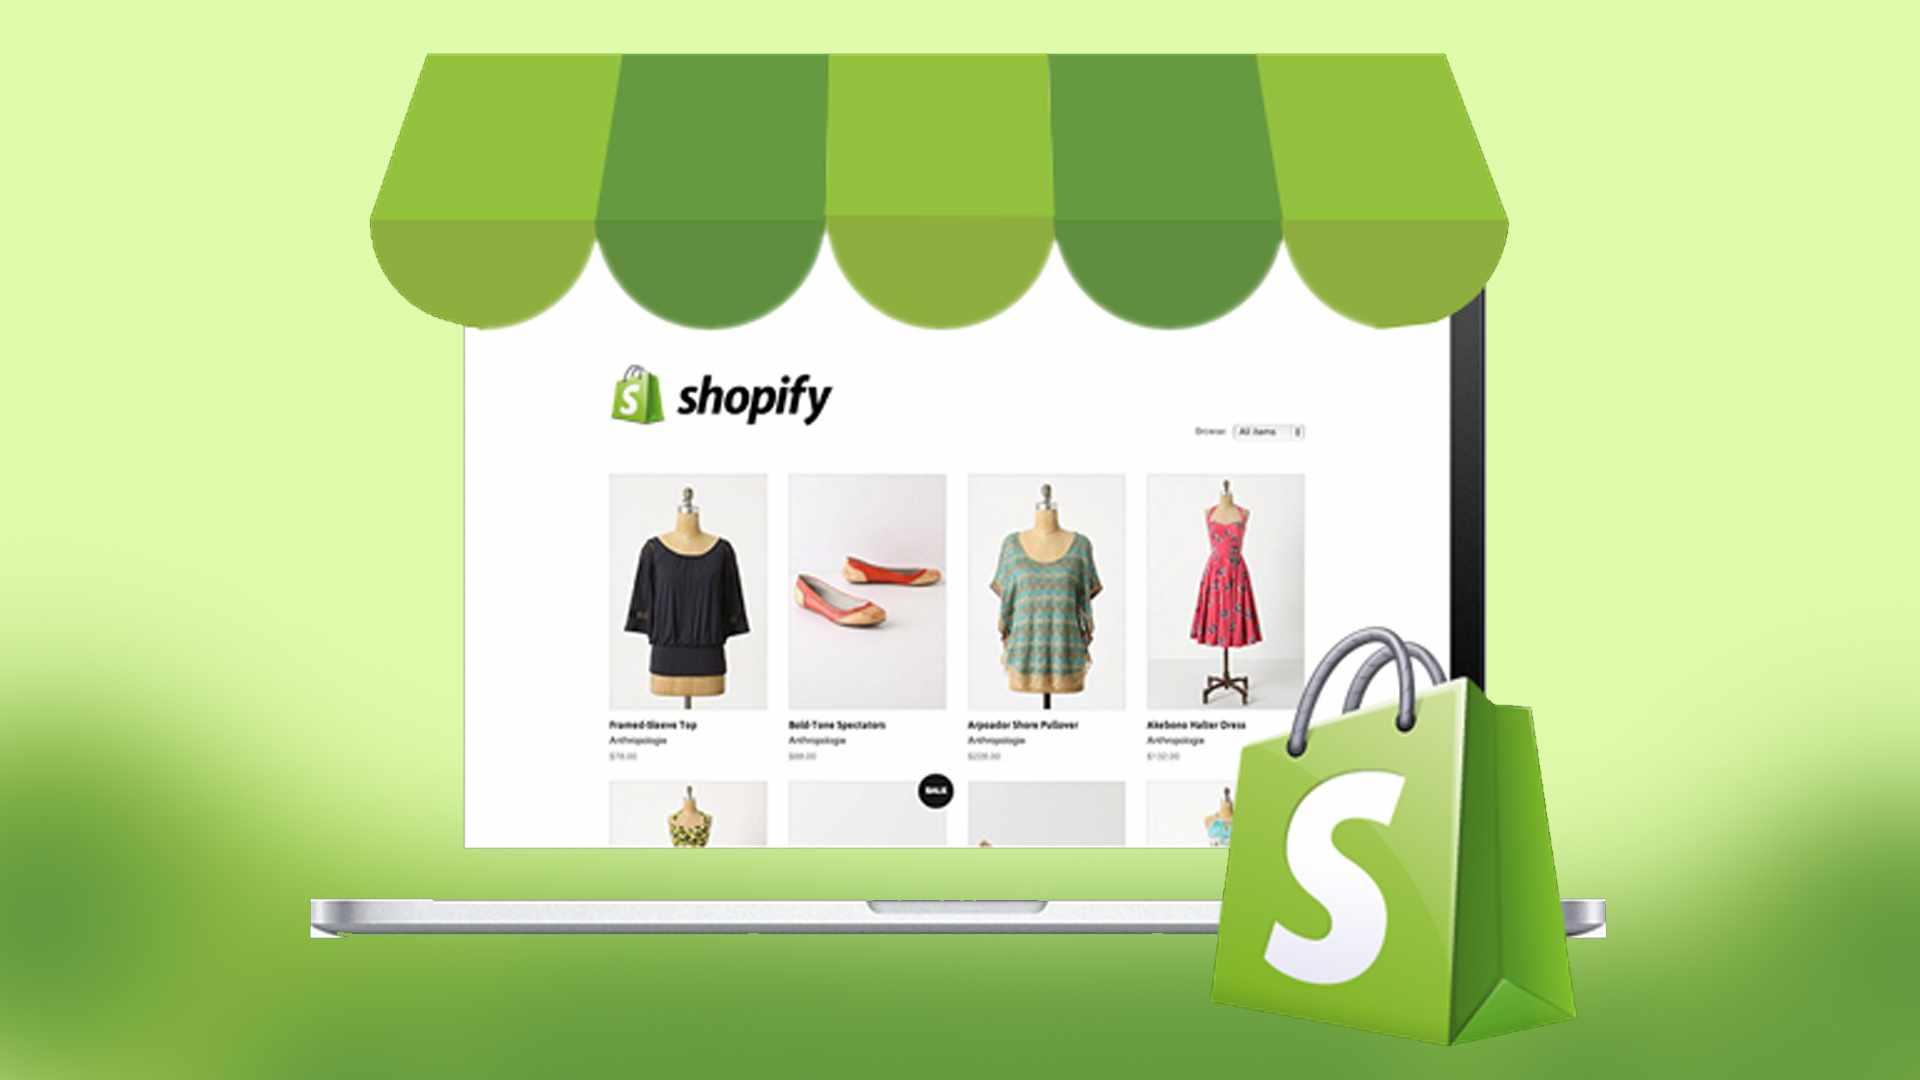 How to Set Up a Shopify Store in 15 Minutes